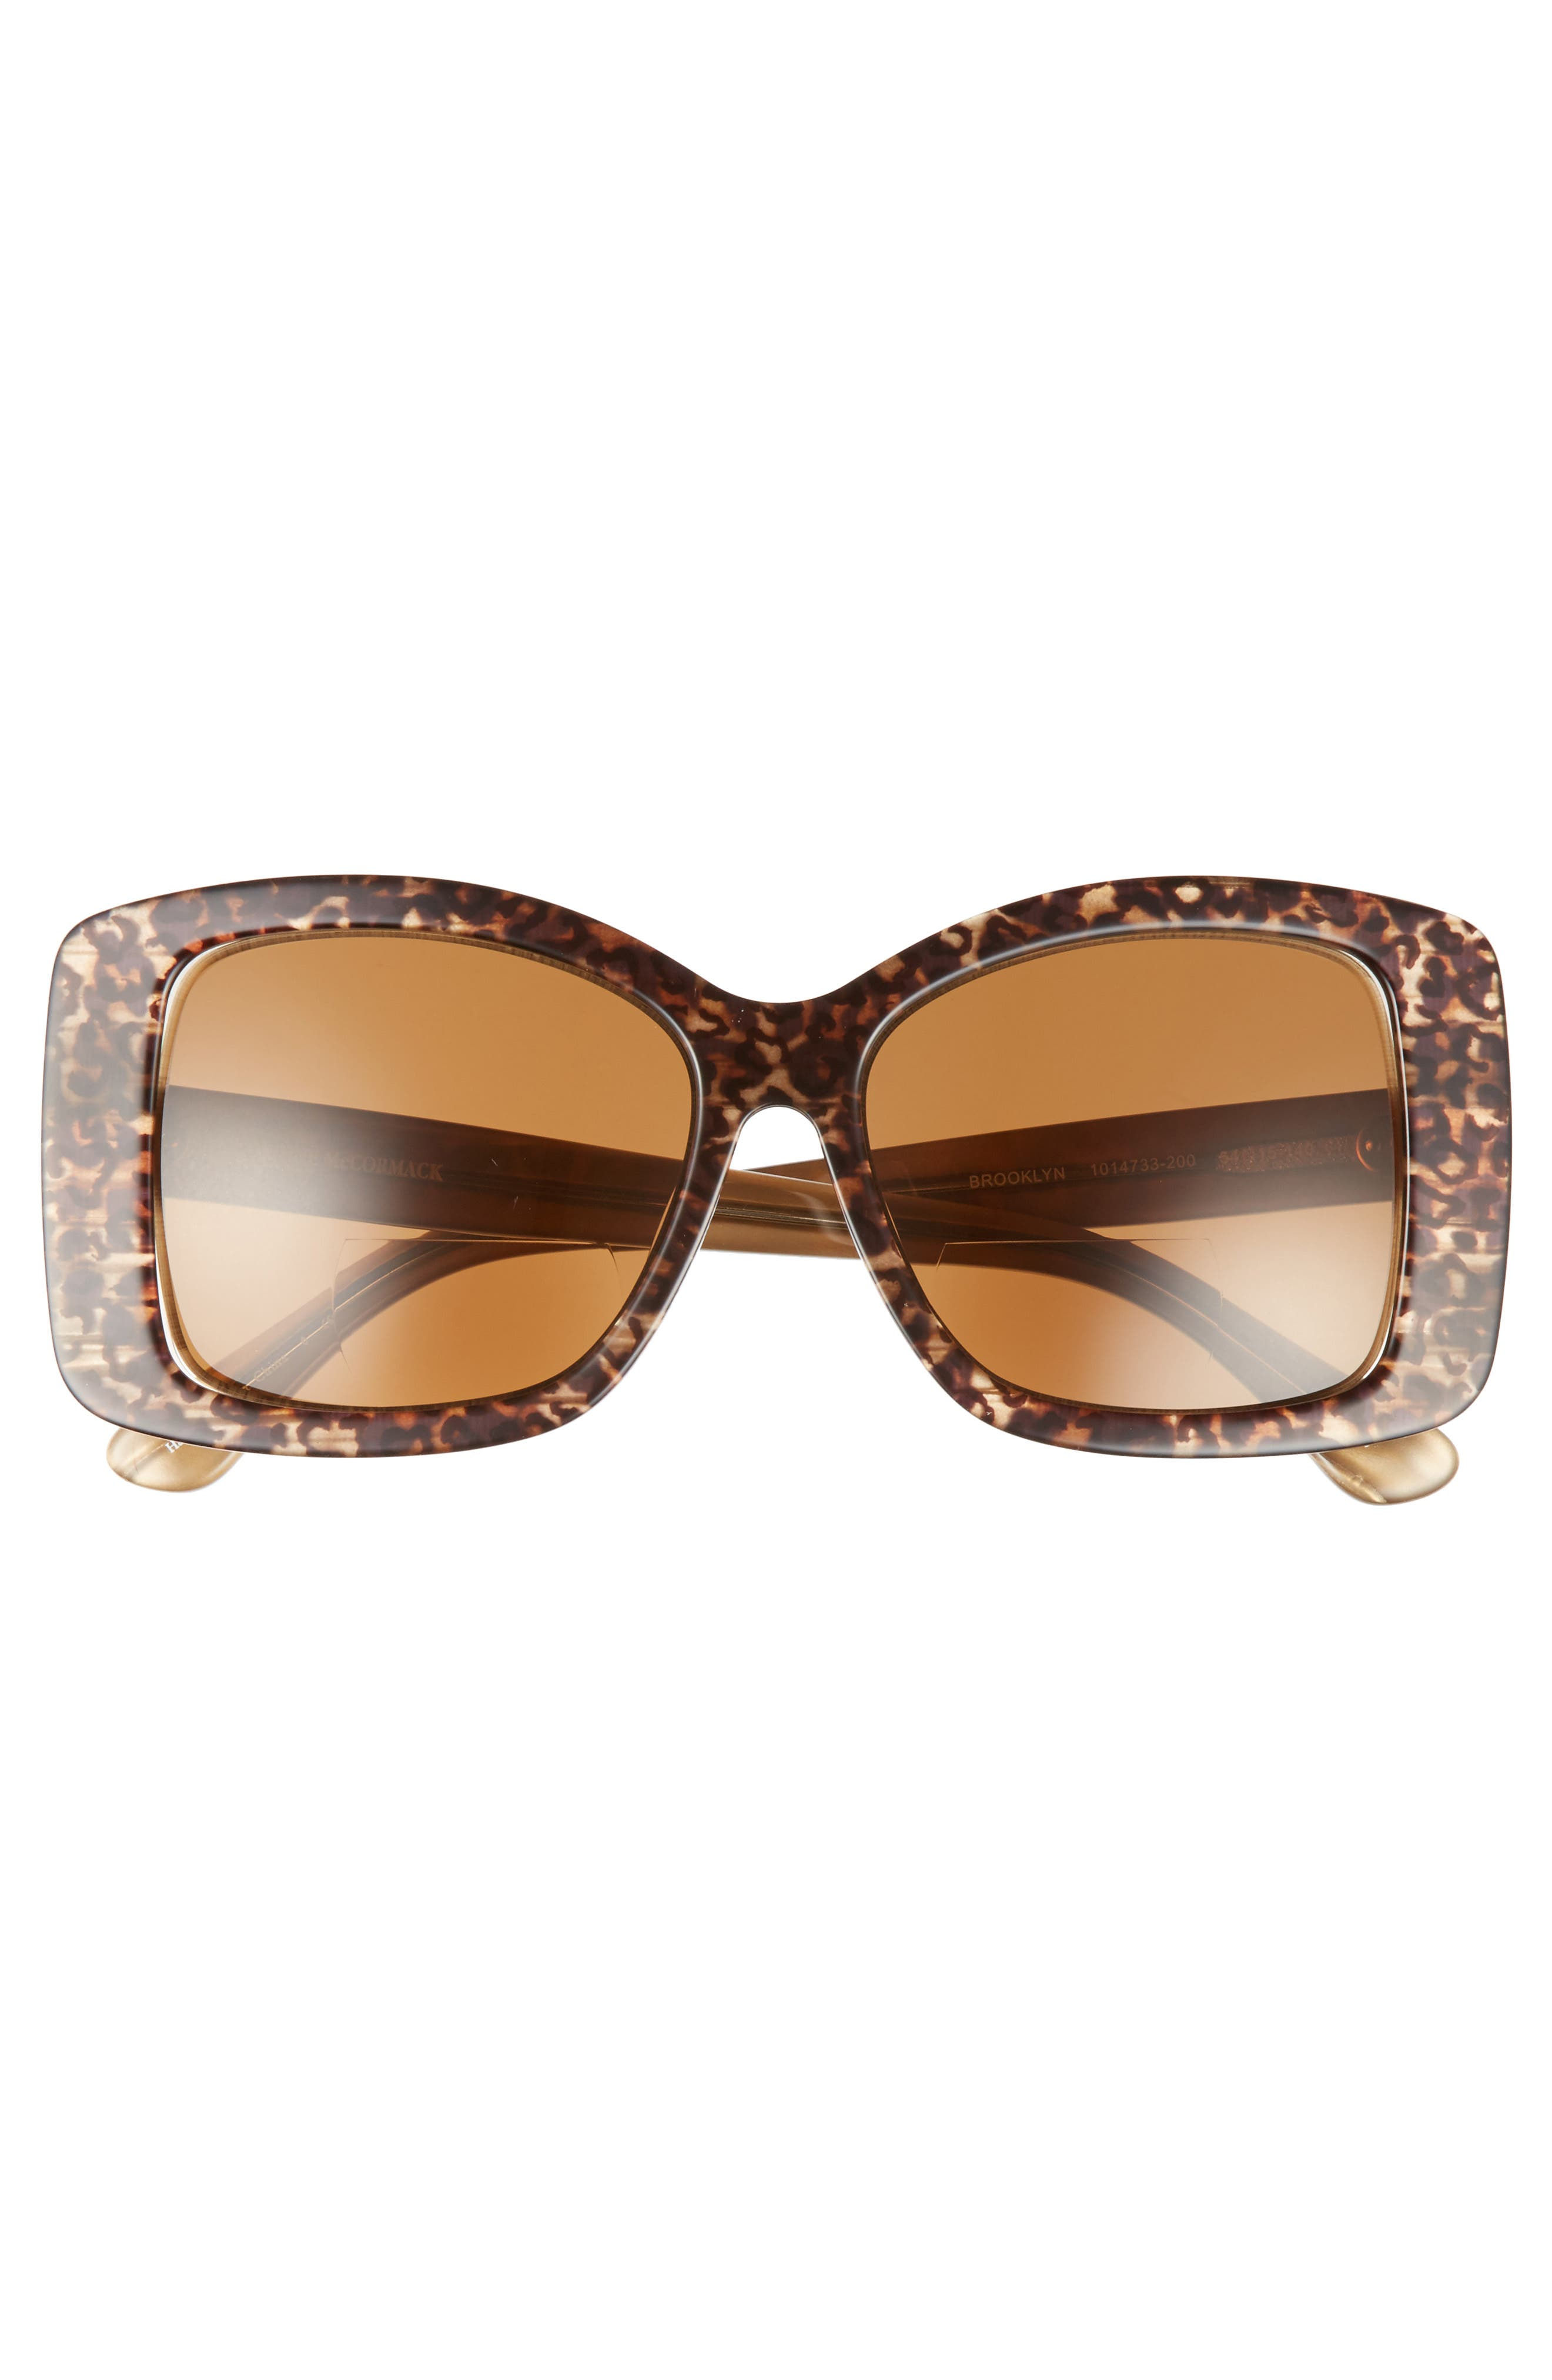 Brooklyn 54mm Reading Sunglasses,                             Alternate thumbnail 3, color,                             BROWN